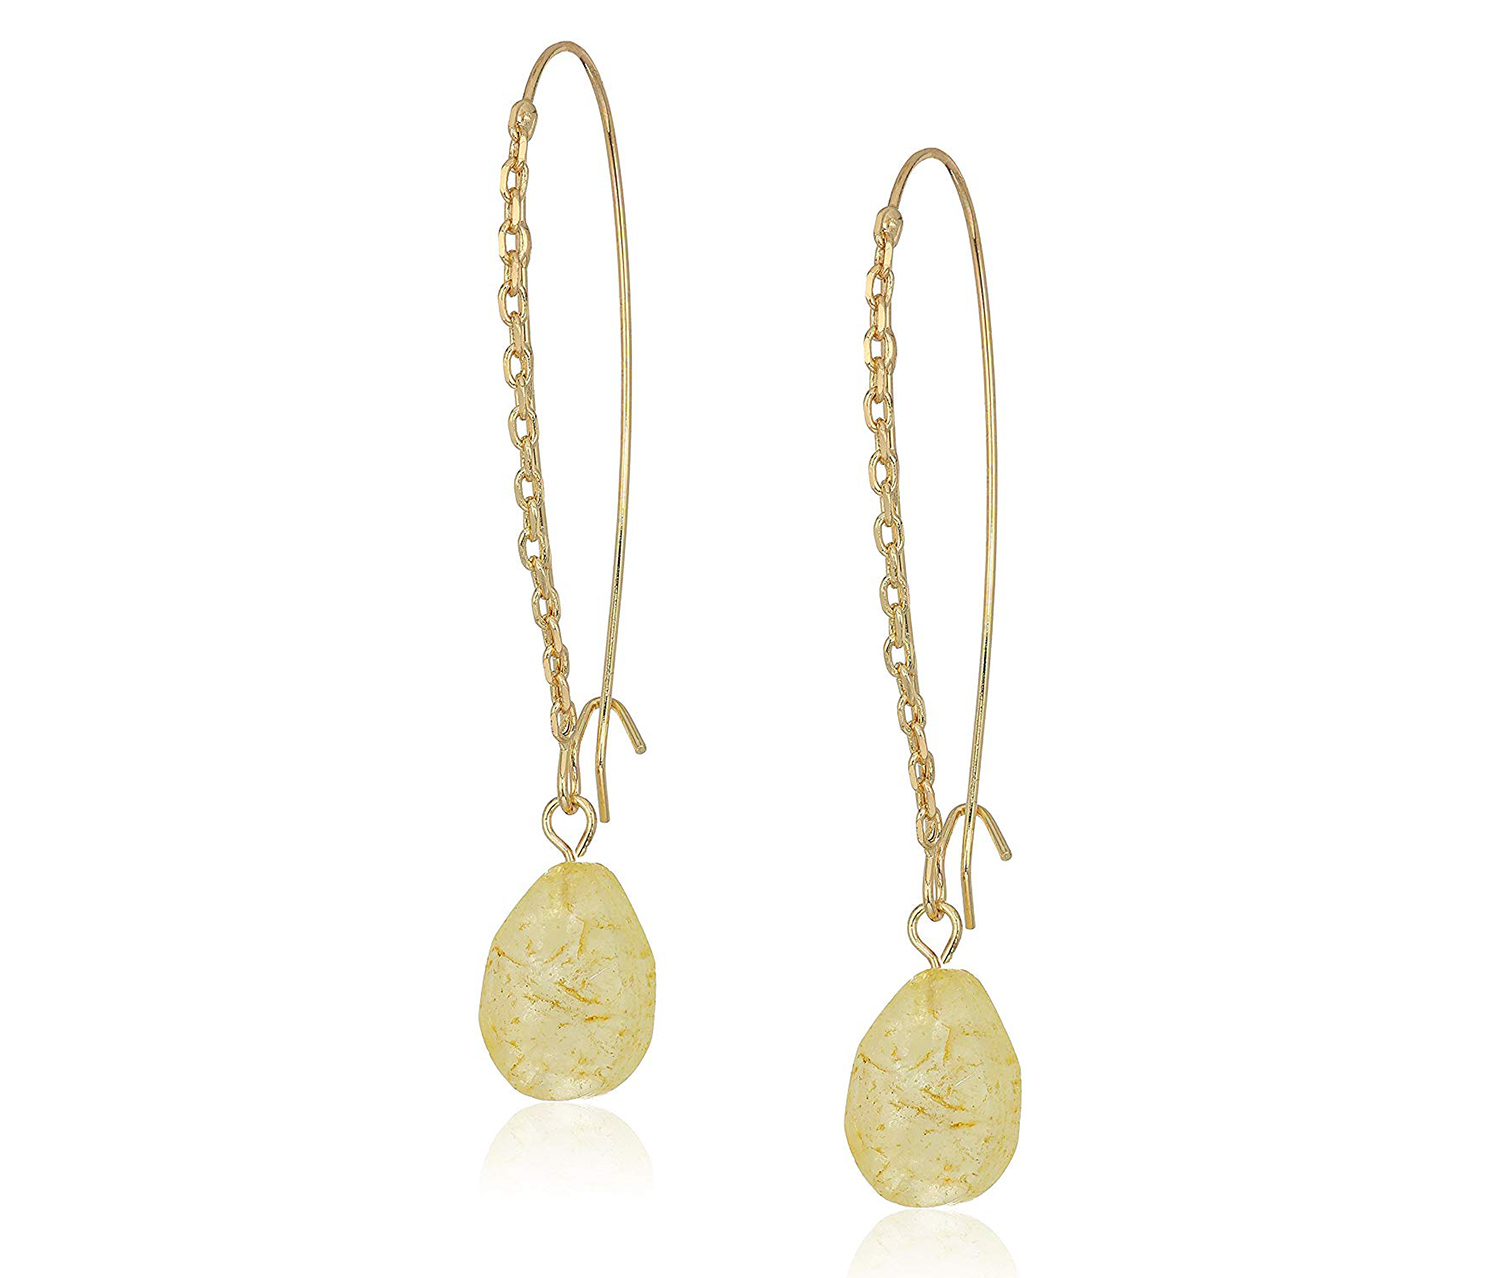 Kenneth Cole Women's Earrings, Gold